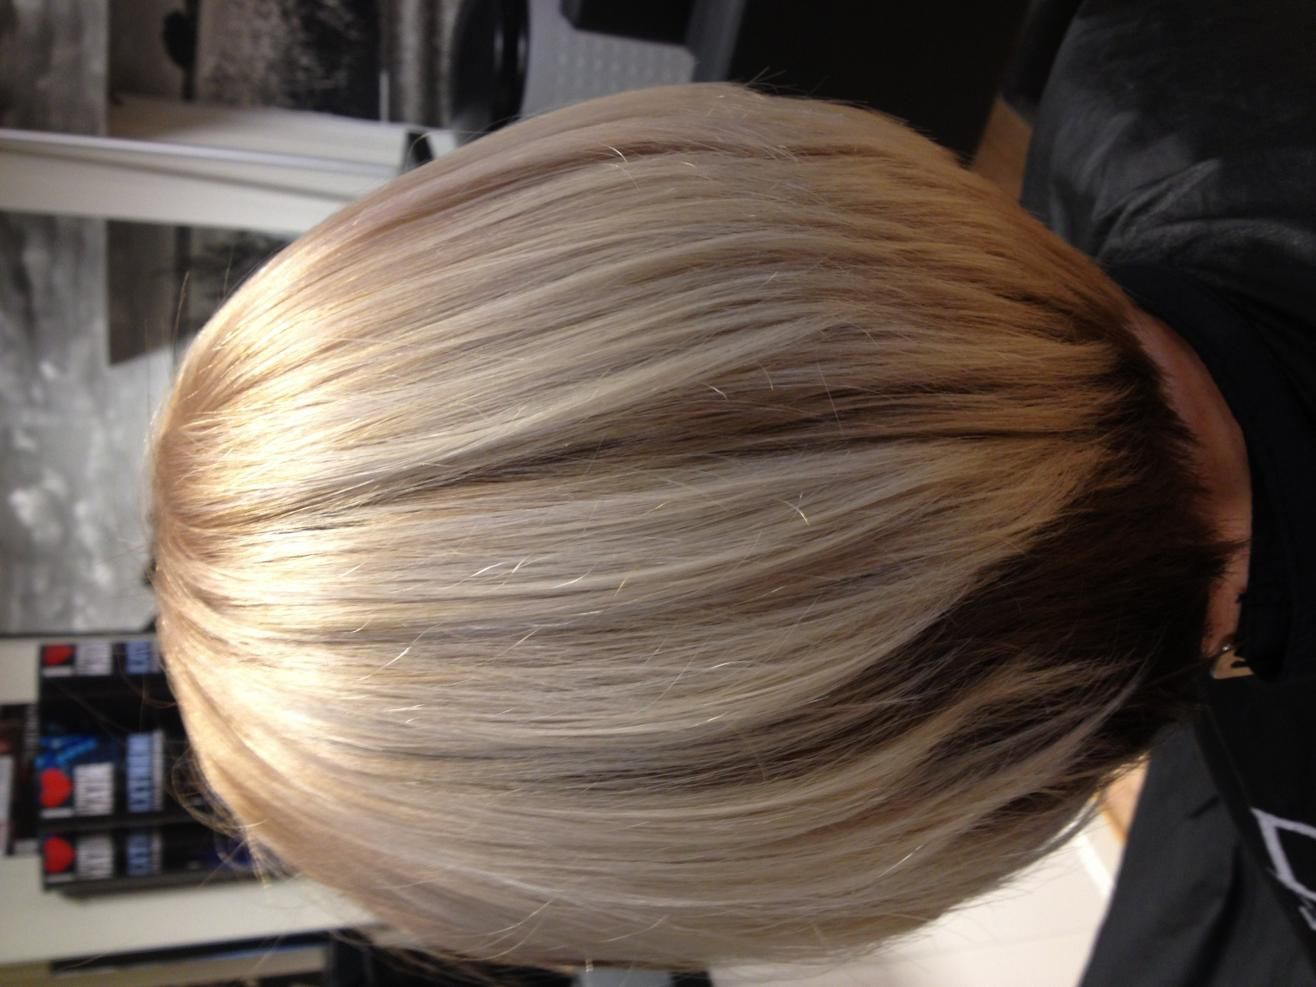 Wella Illumina 960 Used As A Toner Wella Color Formulas